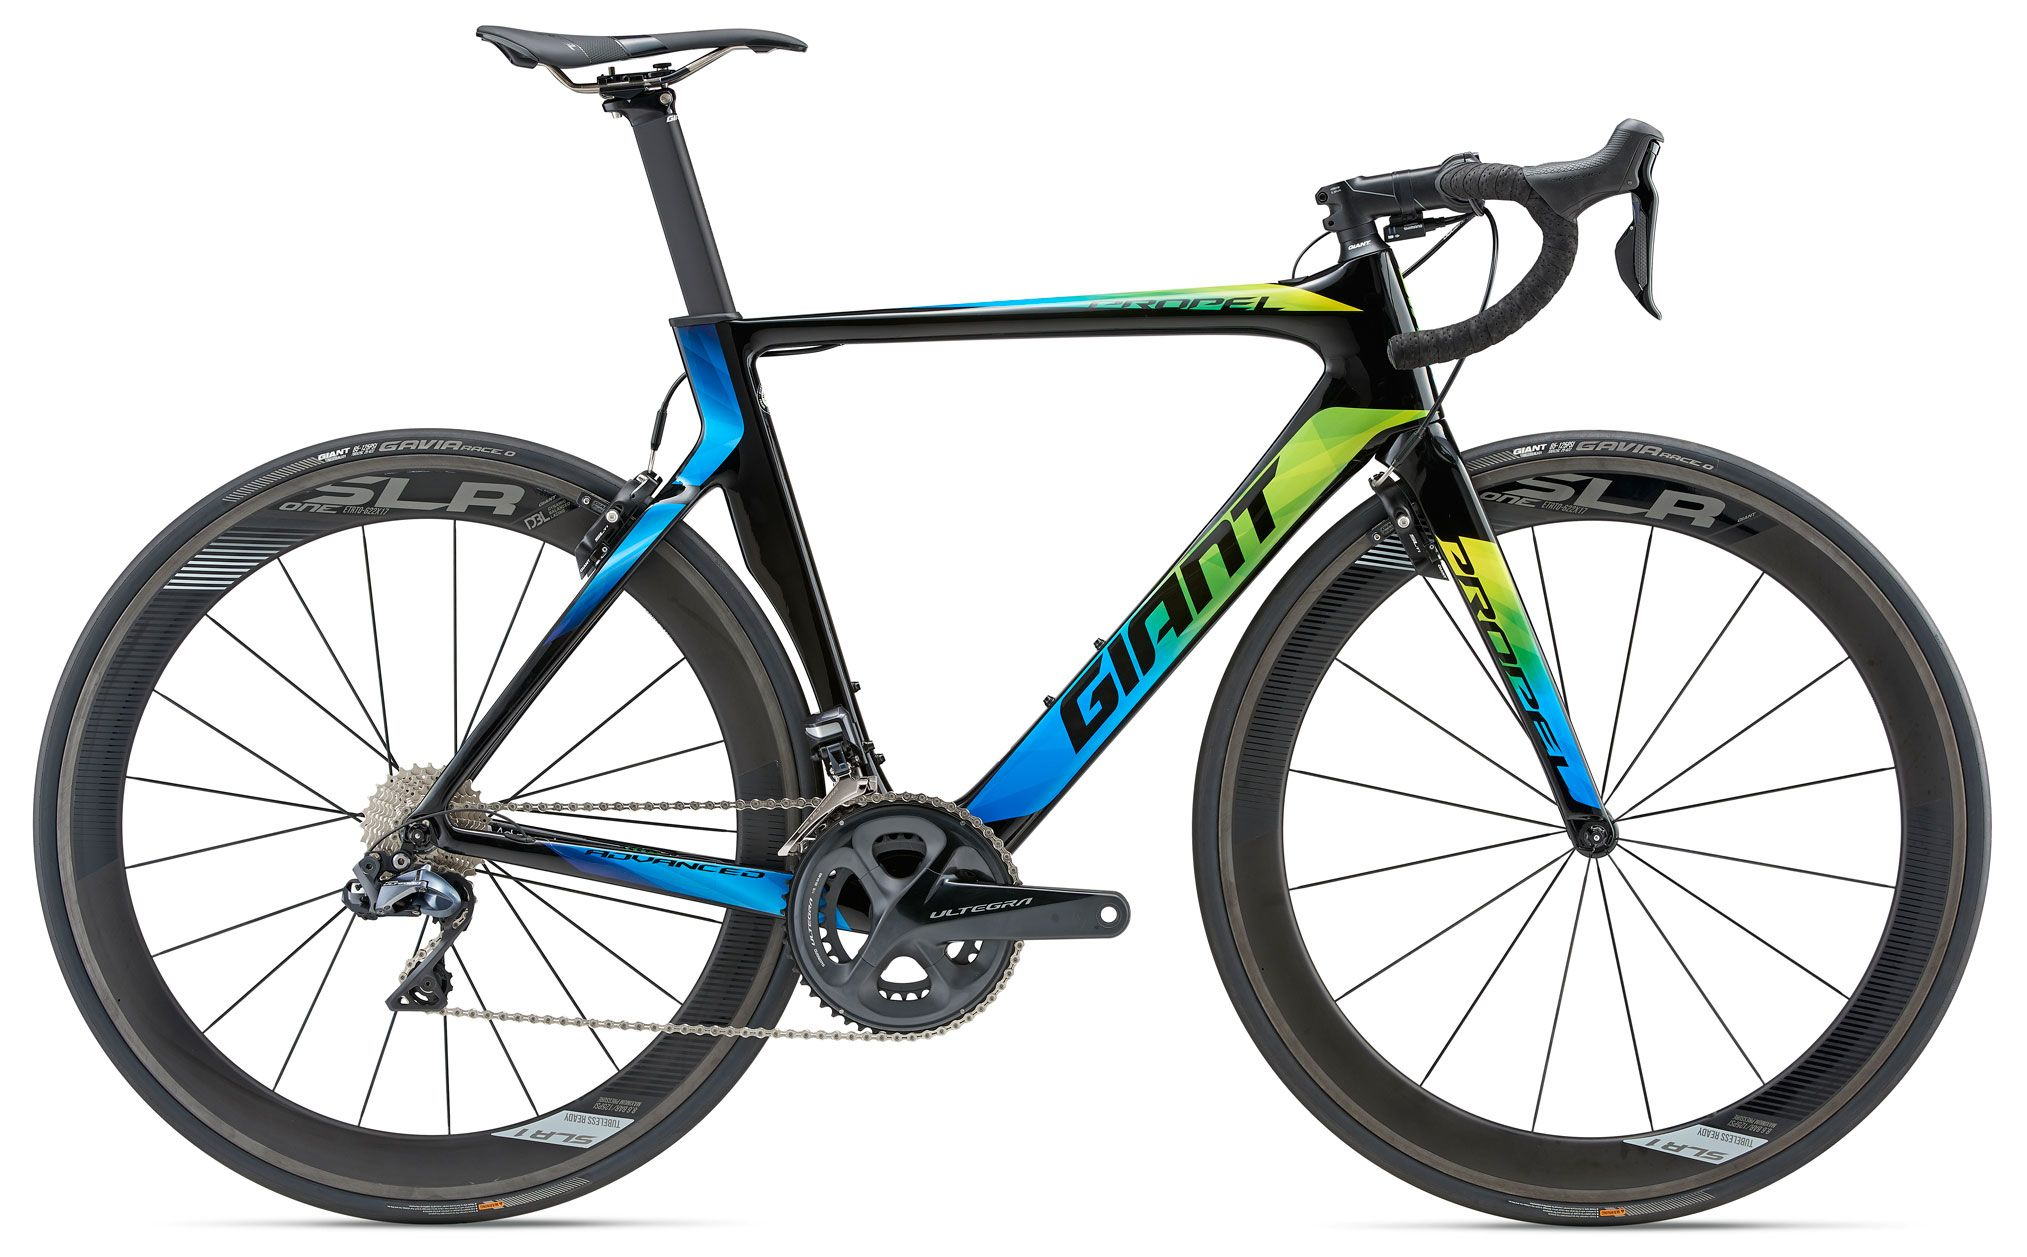 Велосипед Giant Propel Advanced Pro 0 2018 велосипед giant defy advanced pro 0 compact 2015